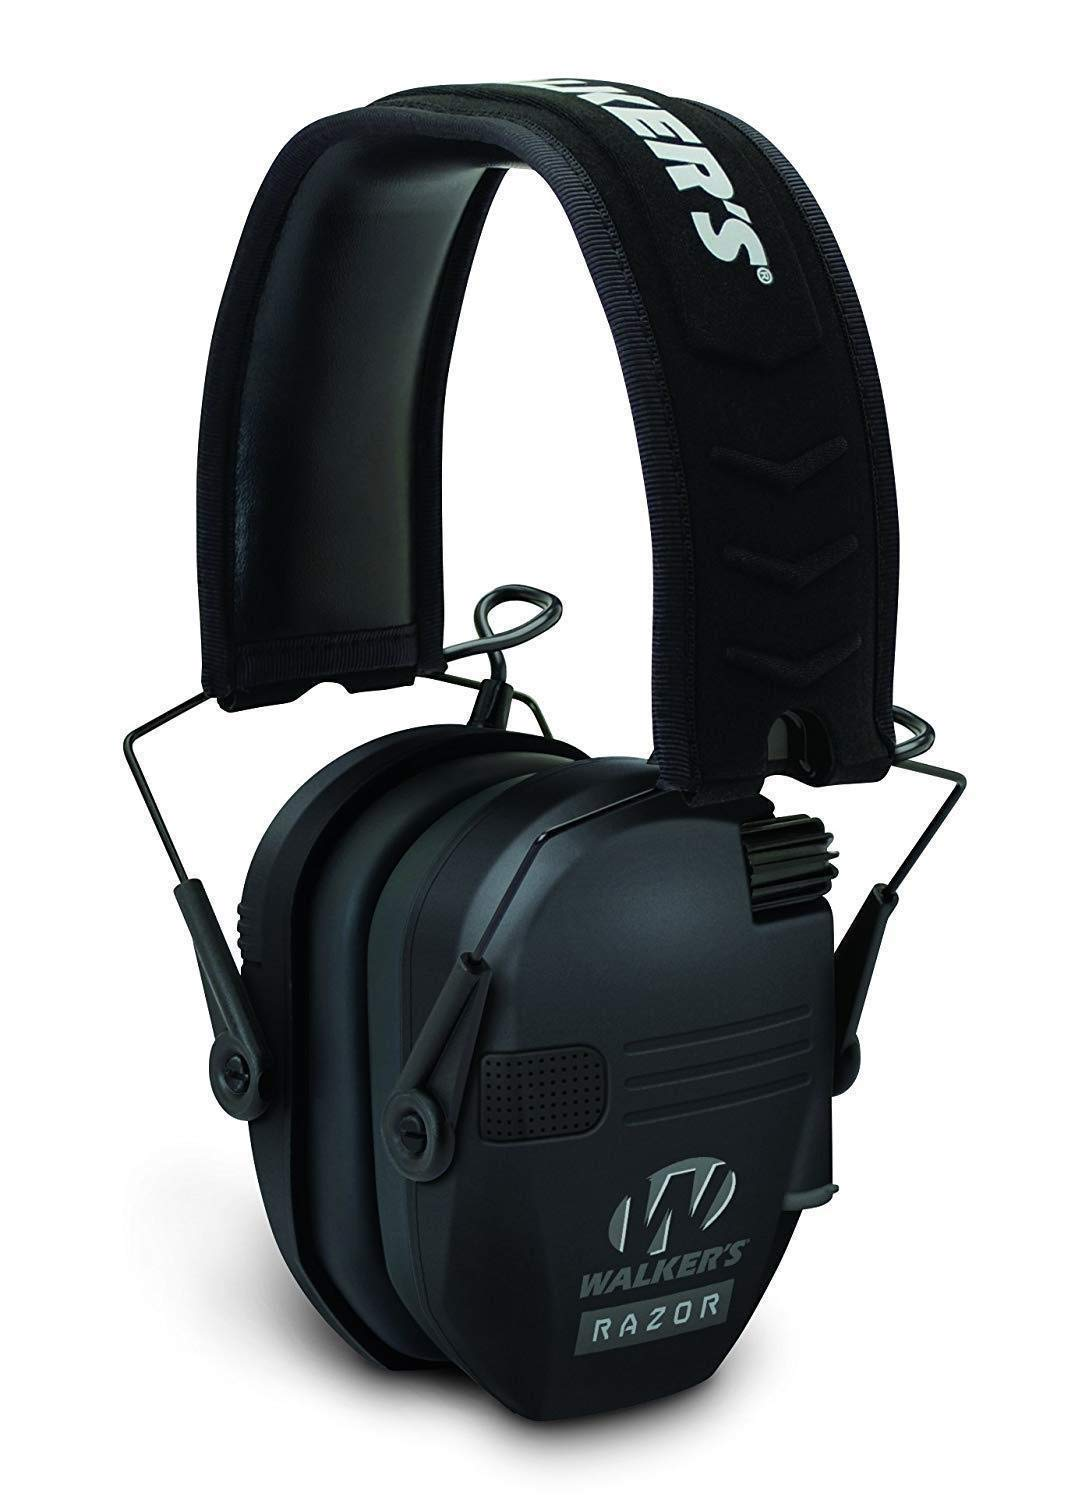 Walkers Razor Slim Electronic Hearing Protection Muffs with Sound Amplification and Suppression and Shooting Glasses Kit by Walkers (Image #3)